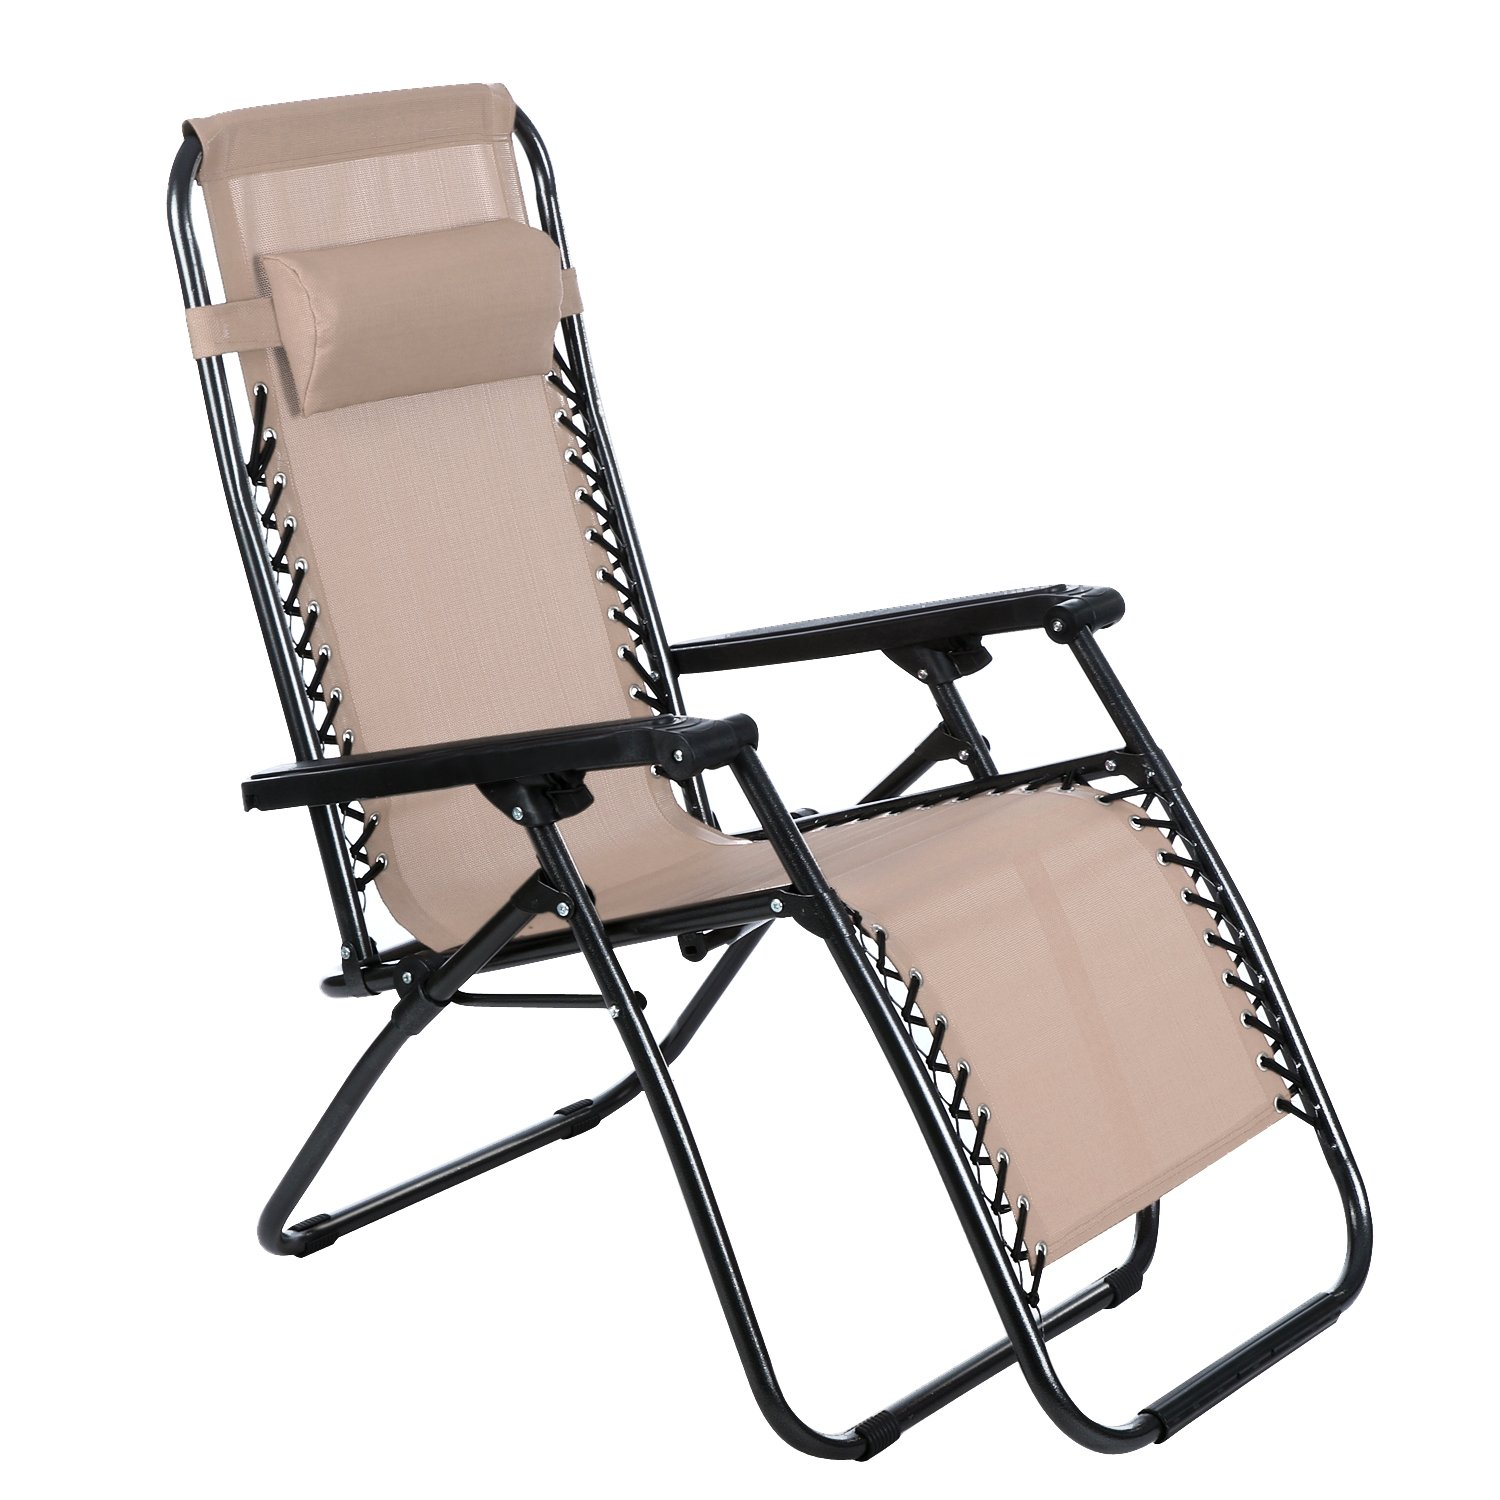 Pleasing Cheap Faulkner Zero Gravity Recliner Find Faulkner Zero Gmtry Best Dining Table And Chair Ideas Images Gmtryco